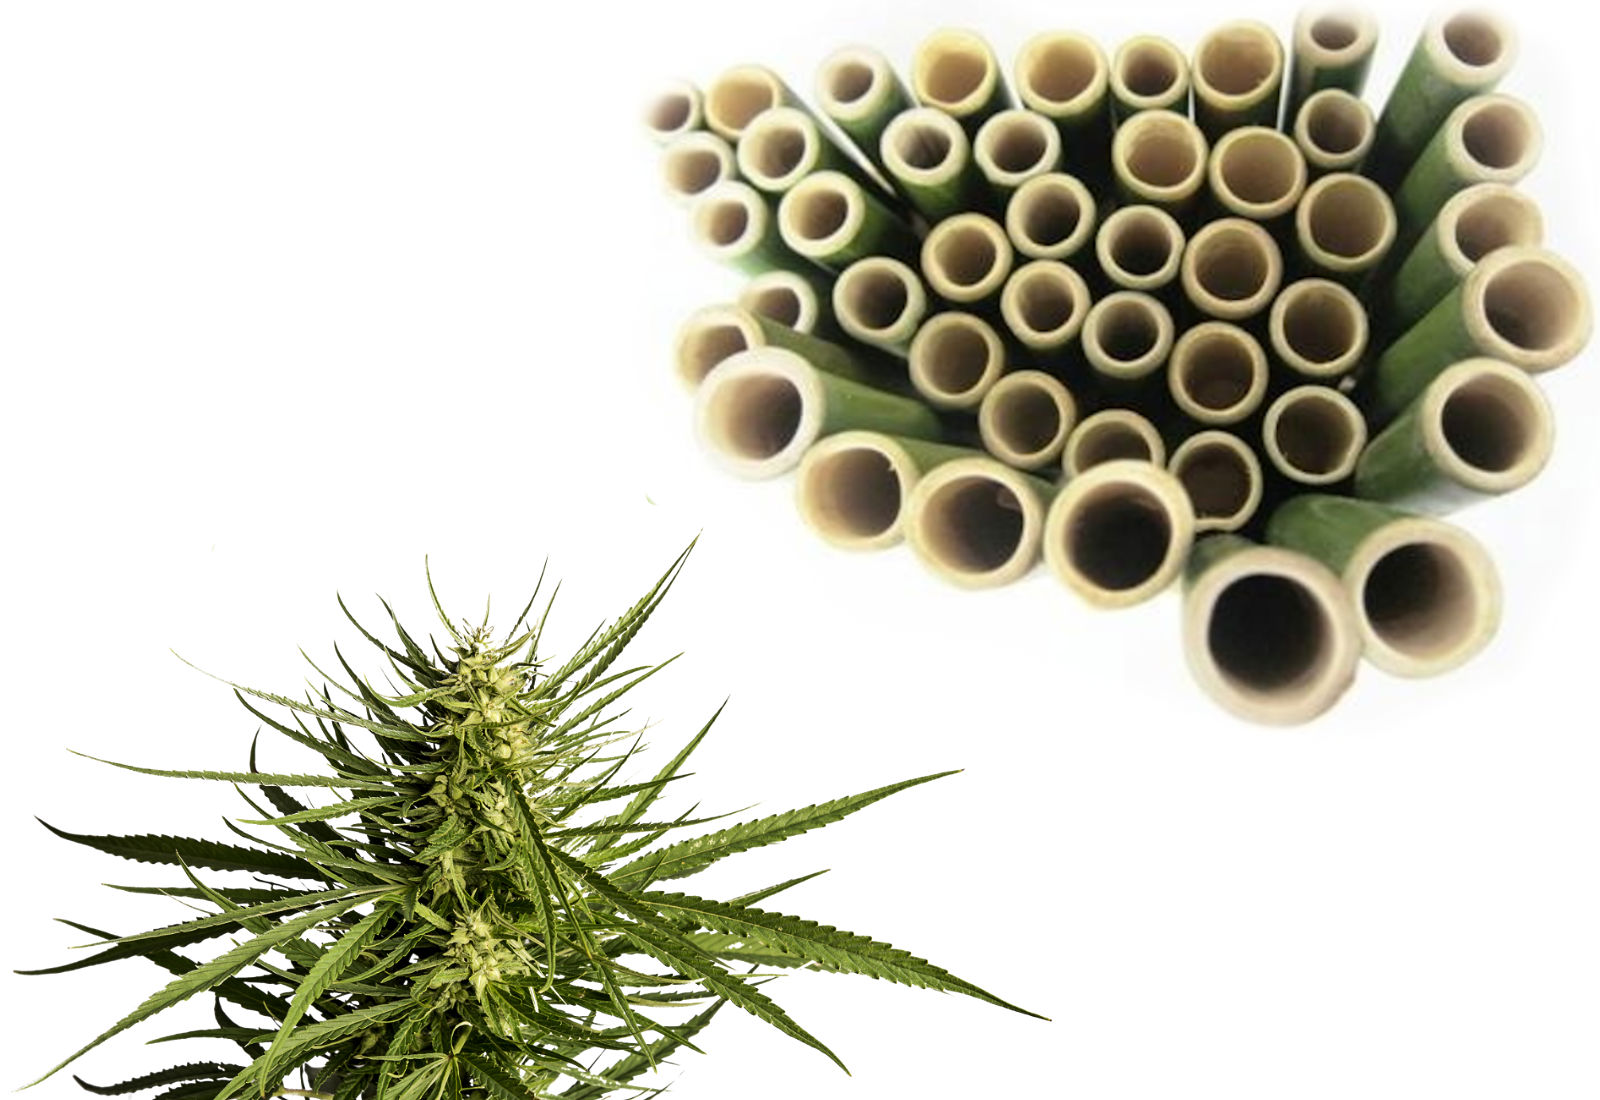 Hemp replaces Oil. Bamboo replaces Coal.